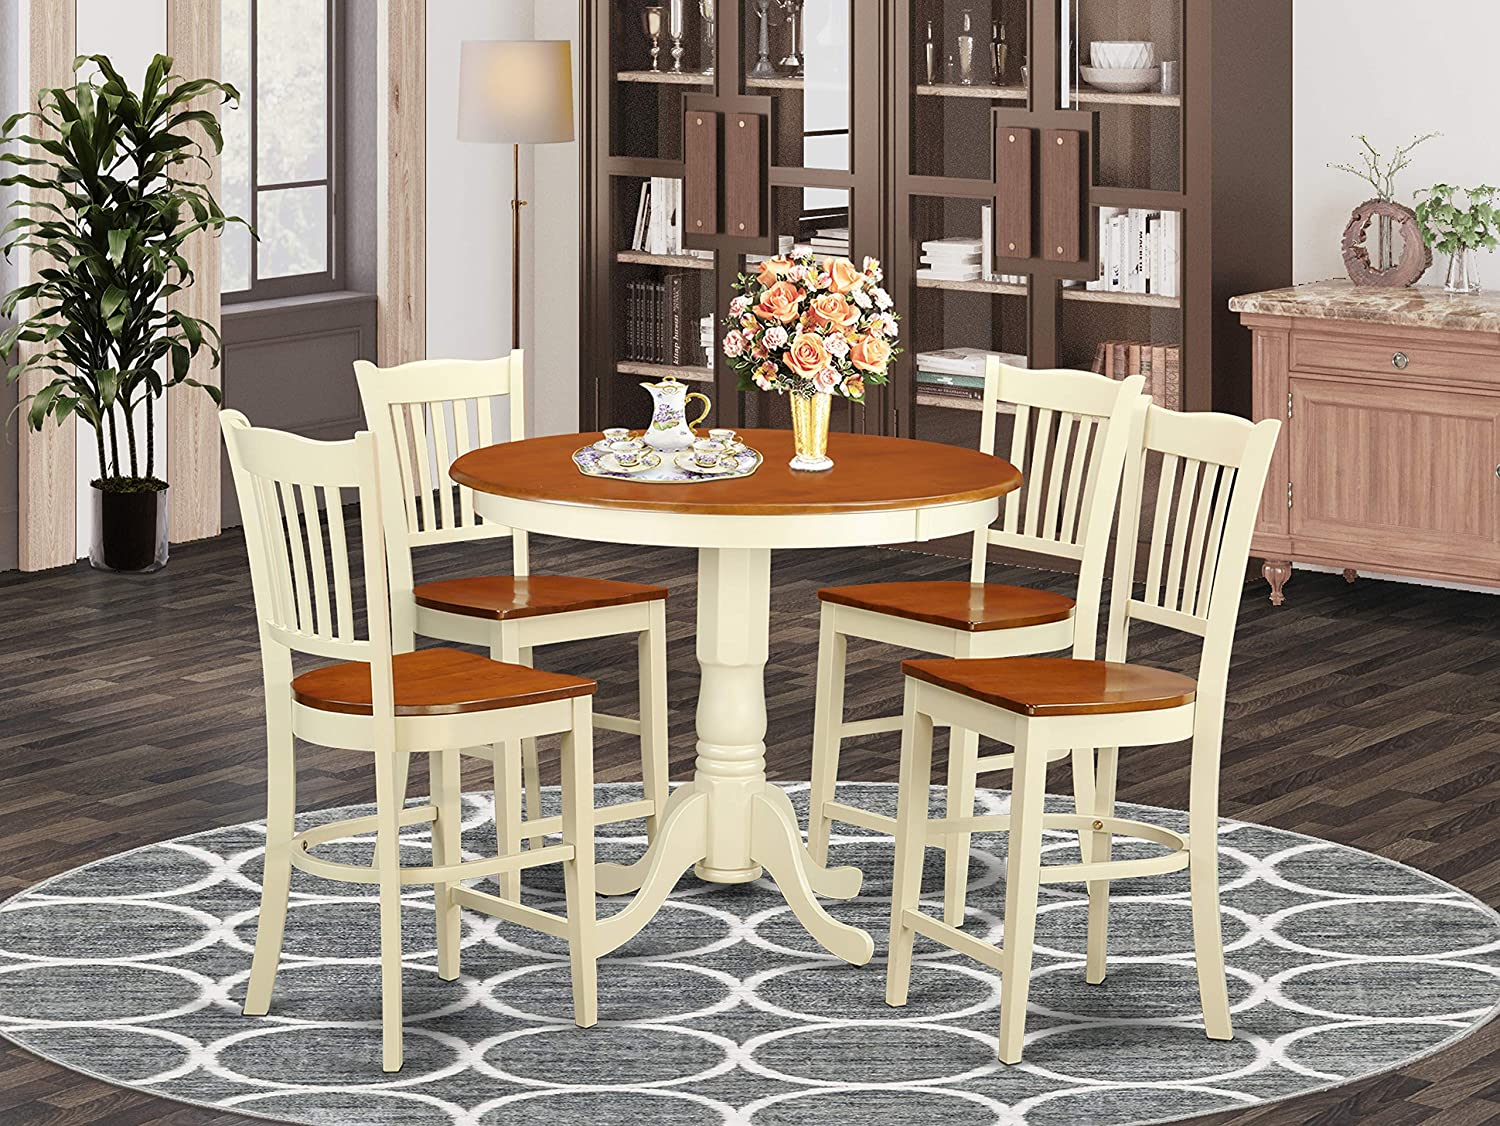 5 PC counter height Dining set-pub Table and 4 bar stools with backs